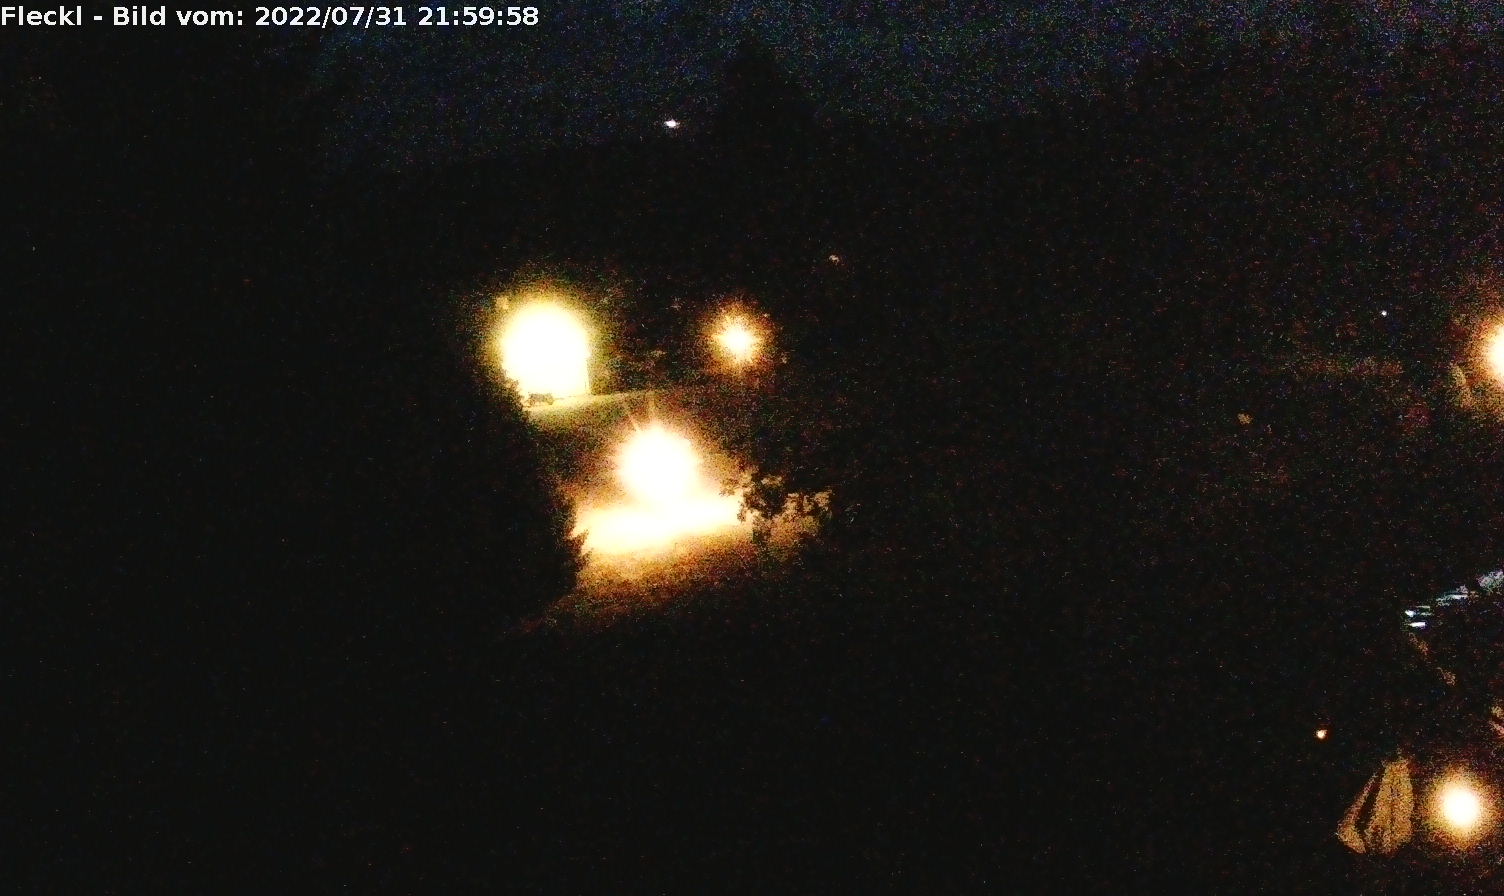 Webcam Fichtelgebirge Fleckl